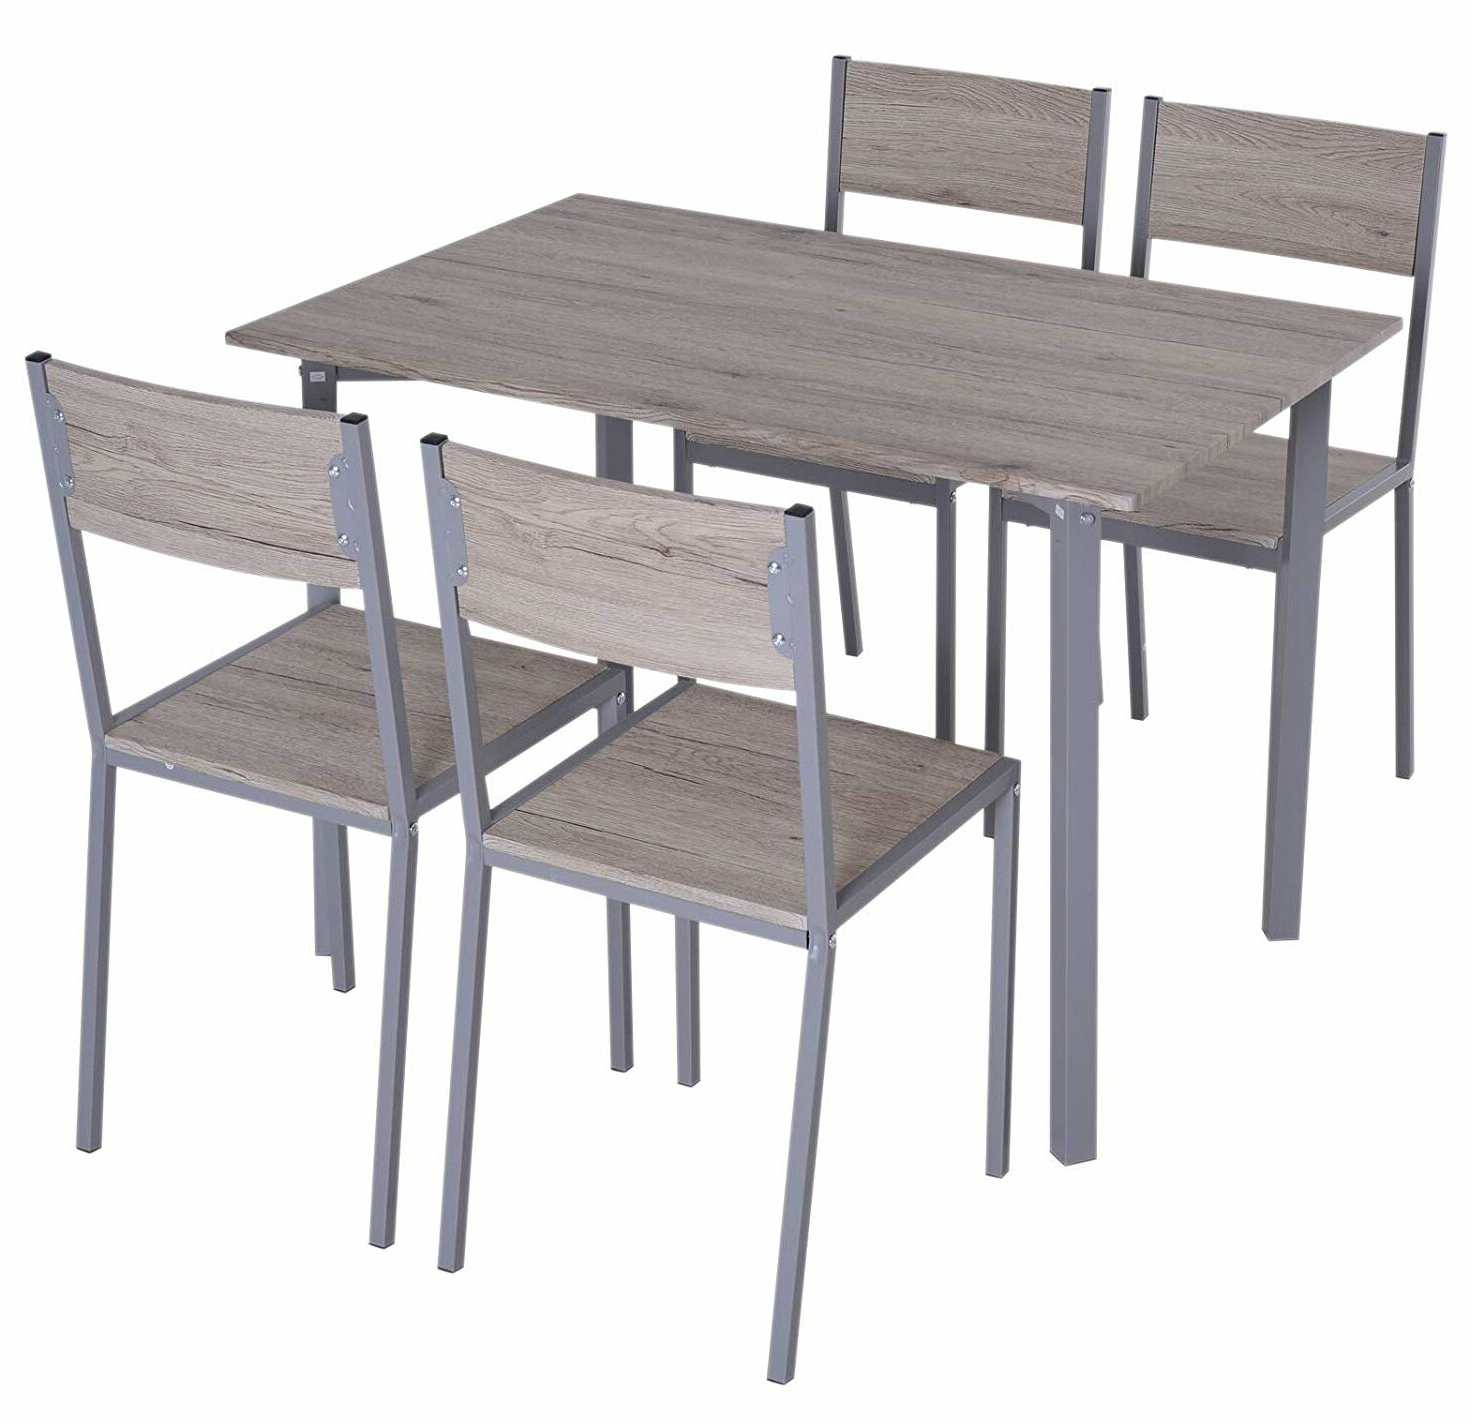 Wayfair Within Most Current Emmeline 5 Piece Breakfast Nook Dining Sets (View 5 of 25)